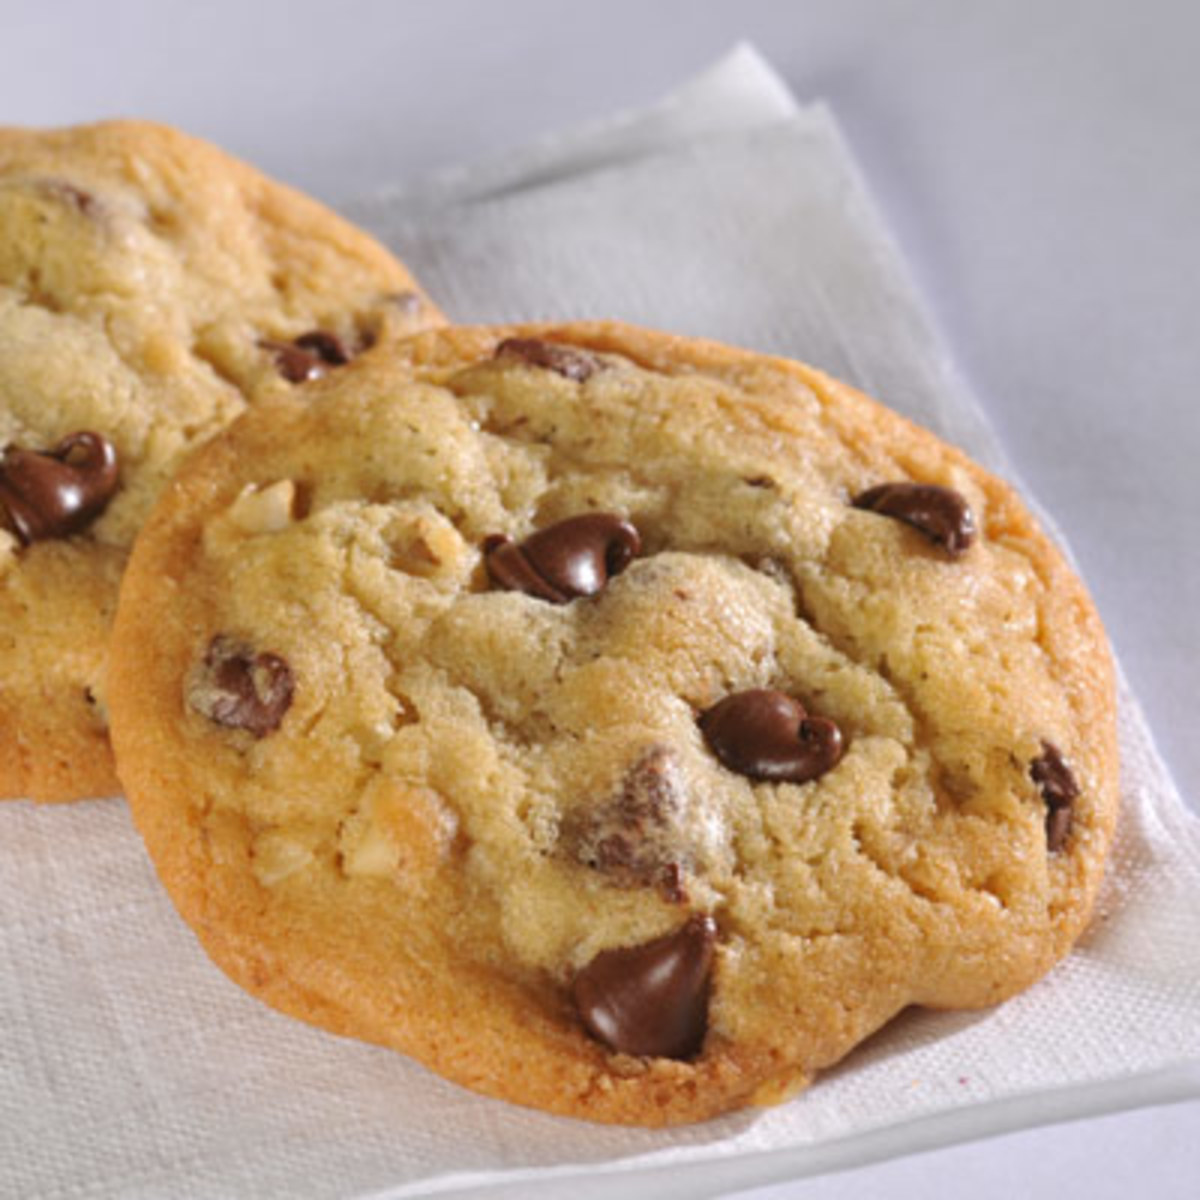 Who doesn't love a chocolate chip cookie?  Always a hit snack at trivia night.